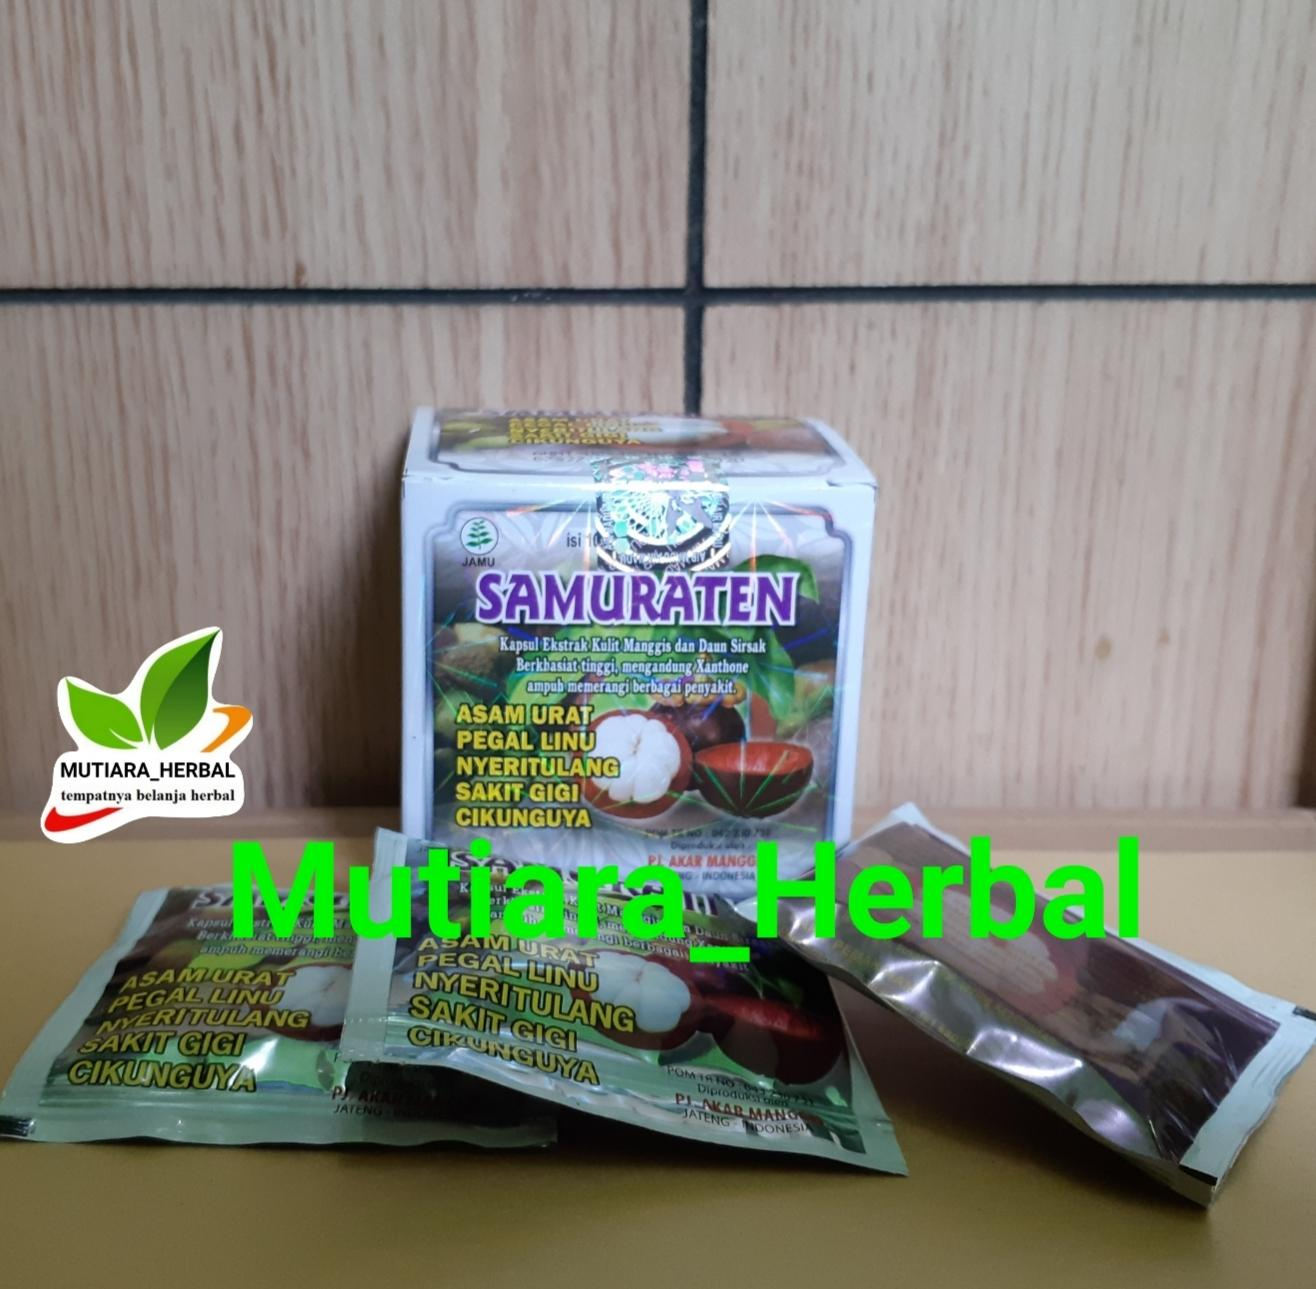 Buy Sell Cheapest Kapsul Asam Urat Best Quality Product Deals Herbal Linu Samuraten Putih Original